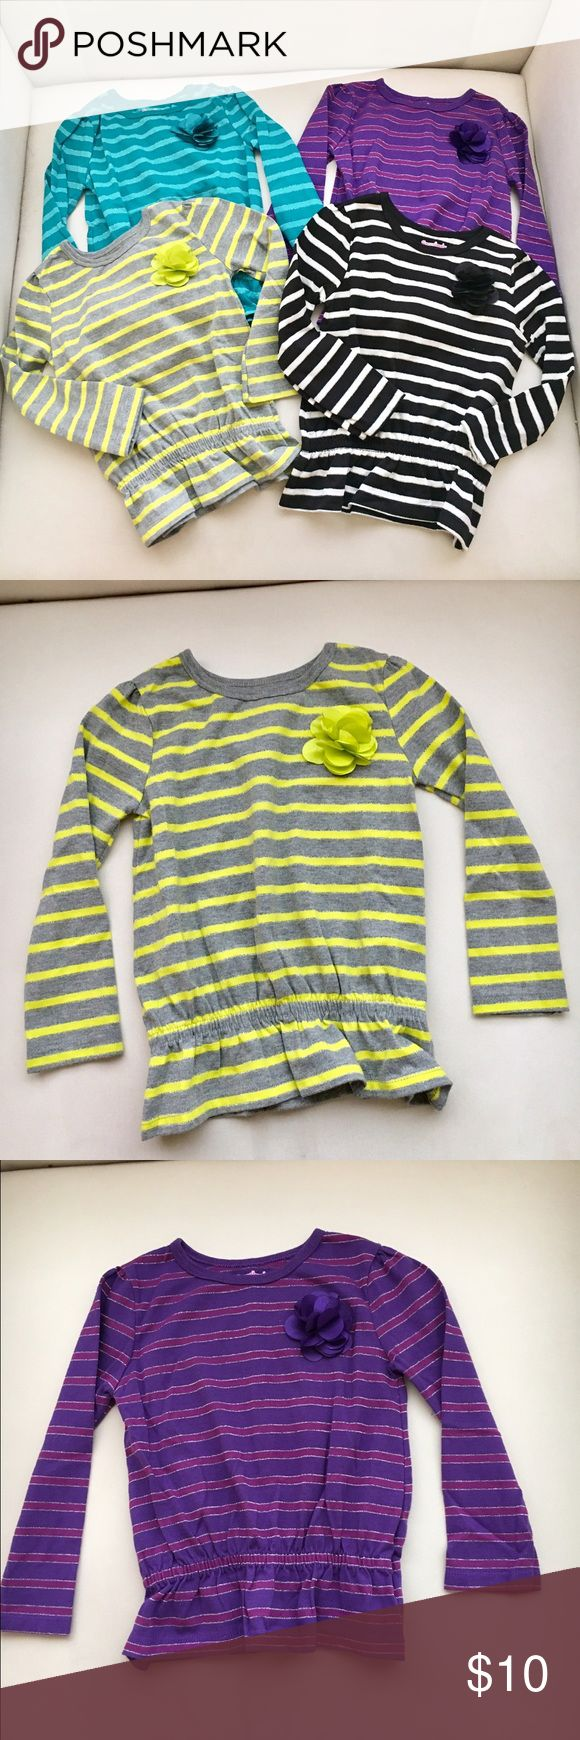 Lot of 4Little Girls Striped Long Sleeve Tops Lot of 4Little Girls Striped Long Sleeve Tops with elastic waist. Cute variety of long sleeve tops for your little girl.  Excellent condition, some never been worn. Pair it with jeans or some leggings! Great tops for all seasons!! Size 3T. Garanimals Shirts & Tops Tees - Short Sleeve